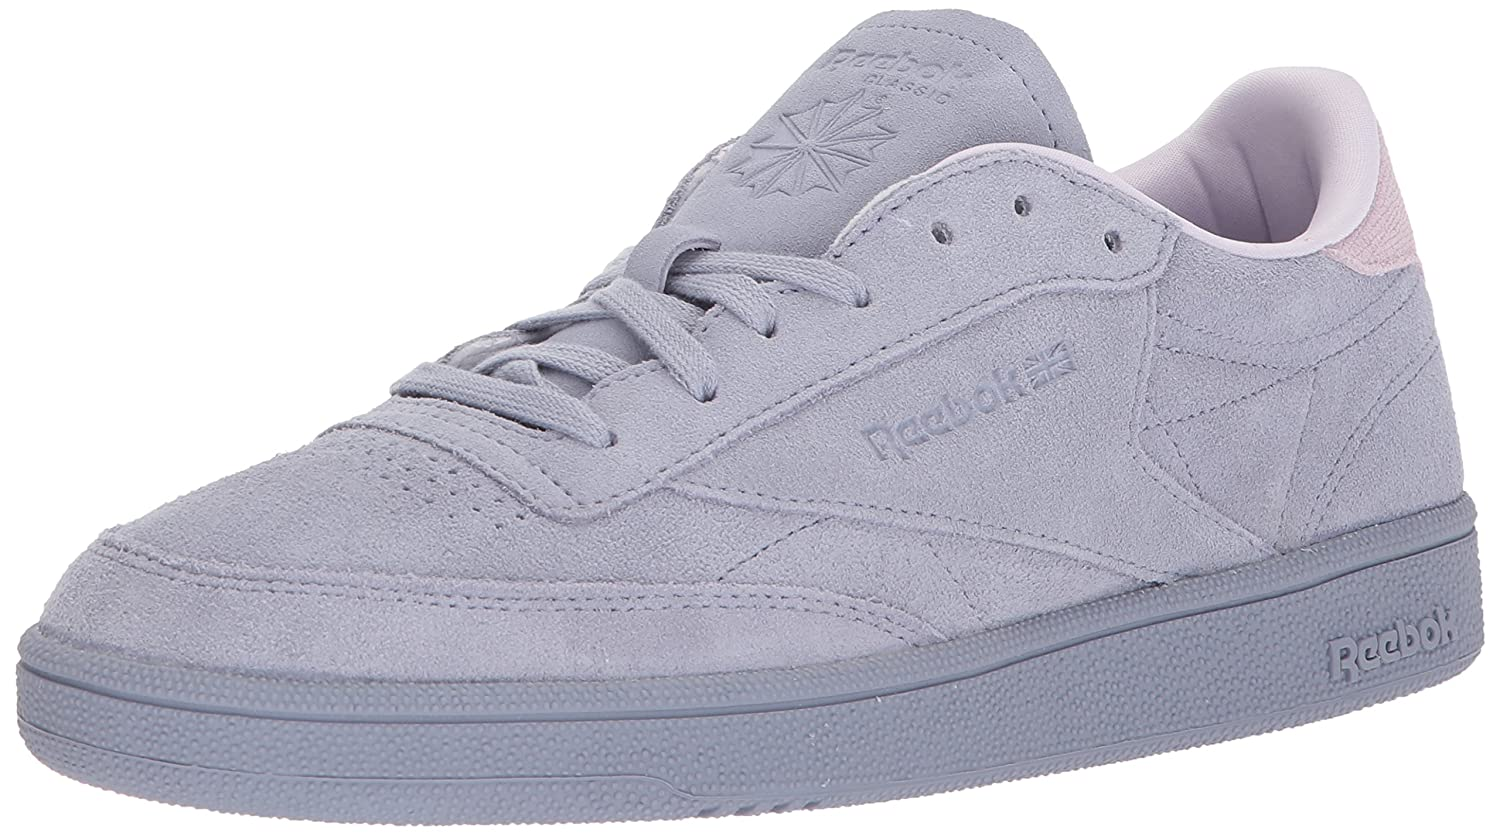 Reebok Women's Club C 85 NBK Sneaker B072Q4WD1K 7 B(M) US|Purple Fog/Quartz